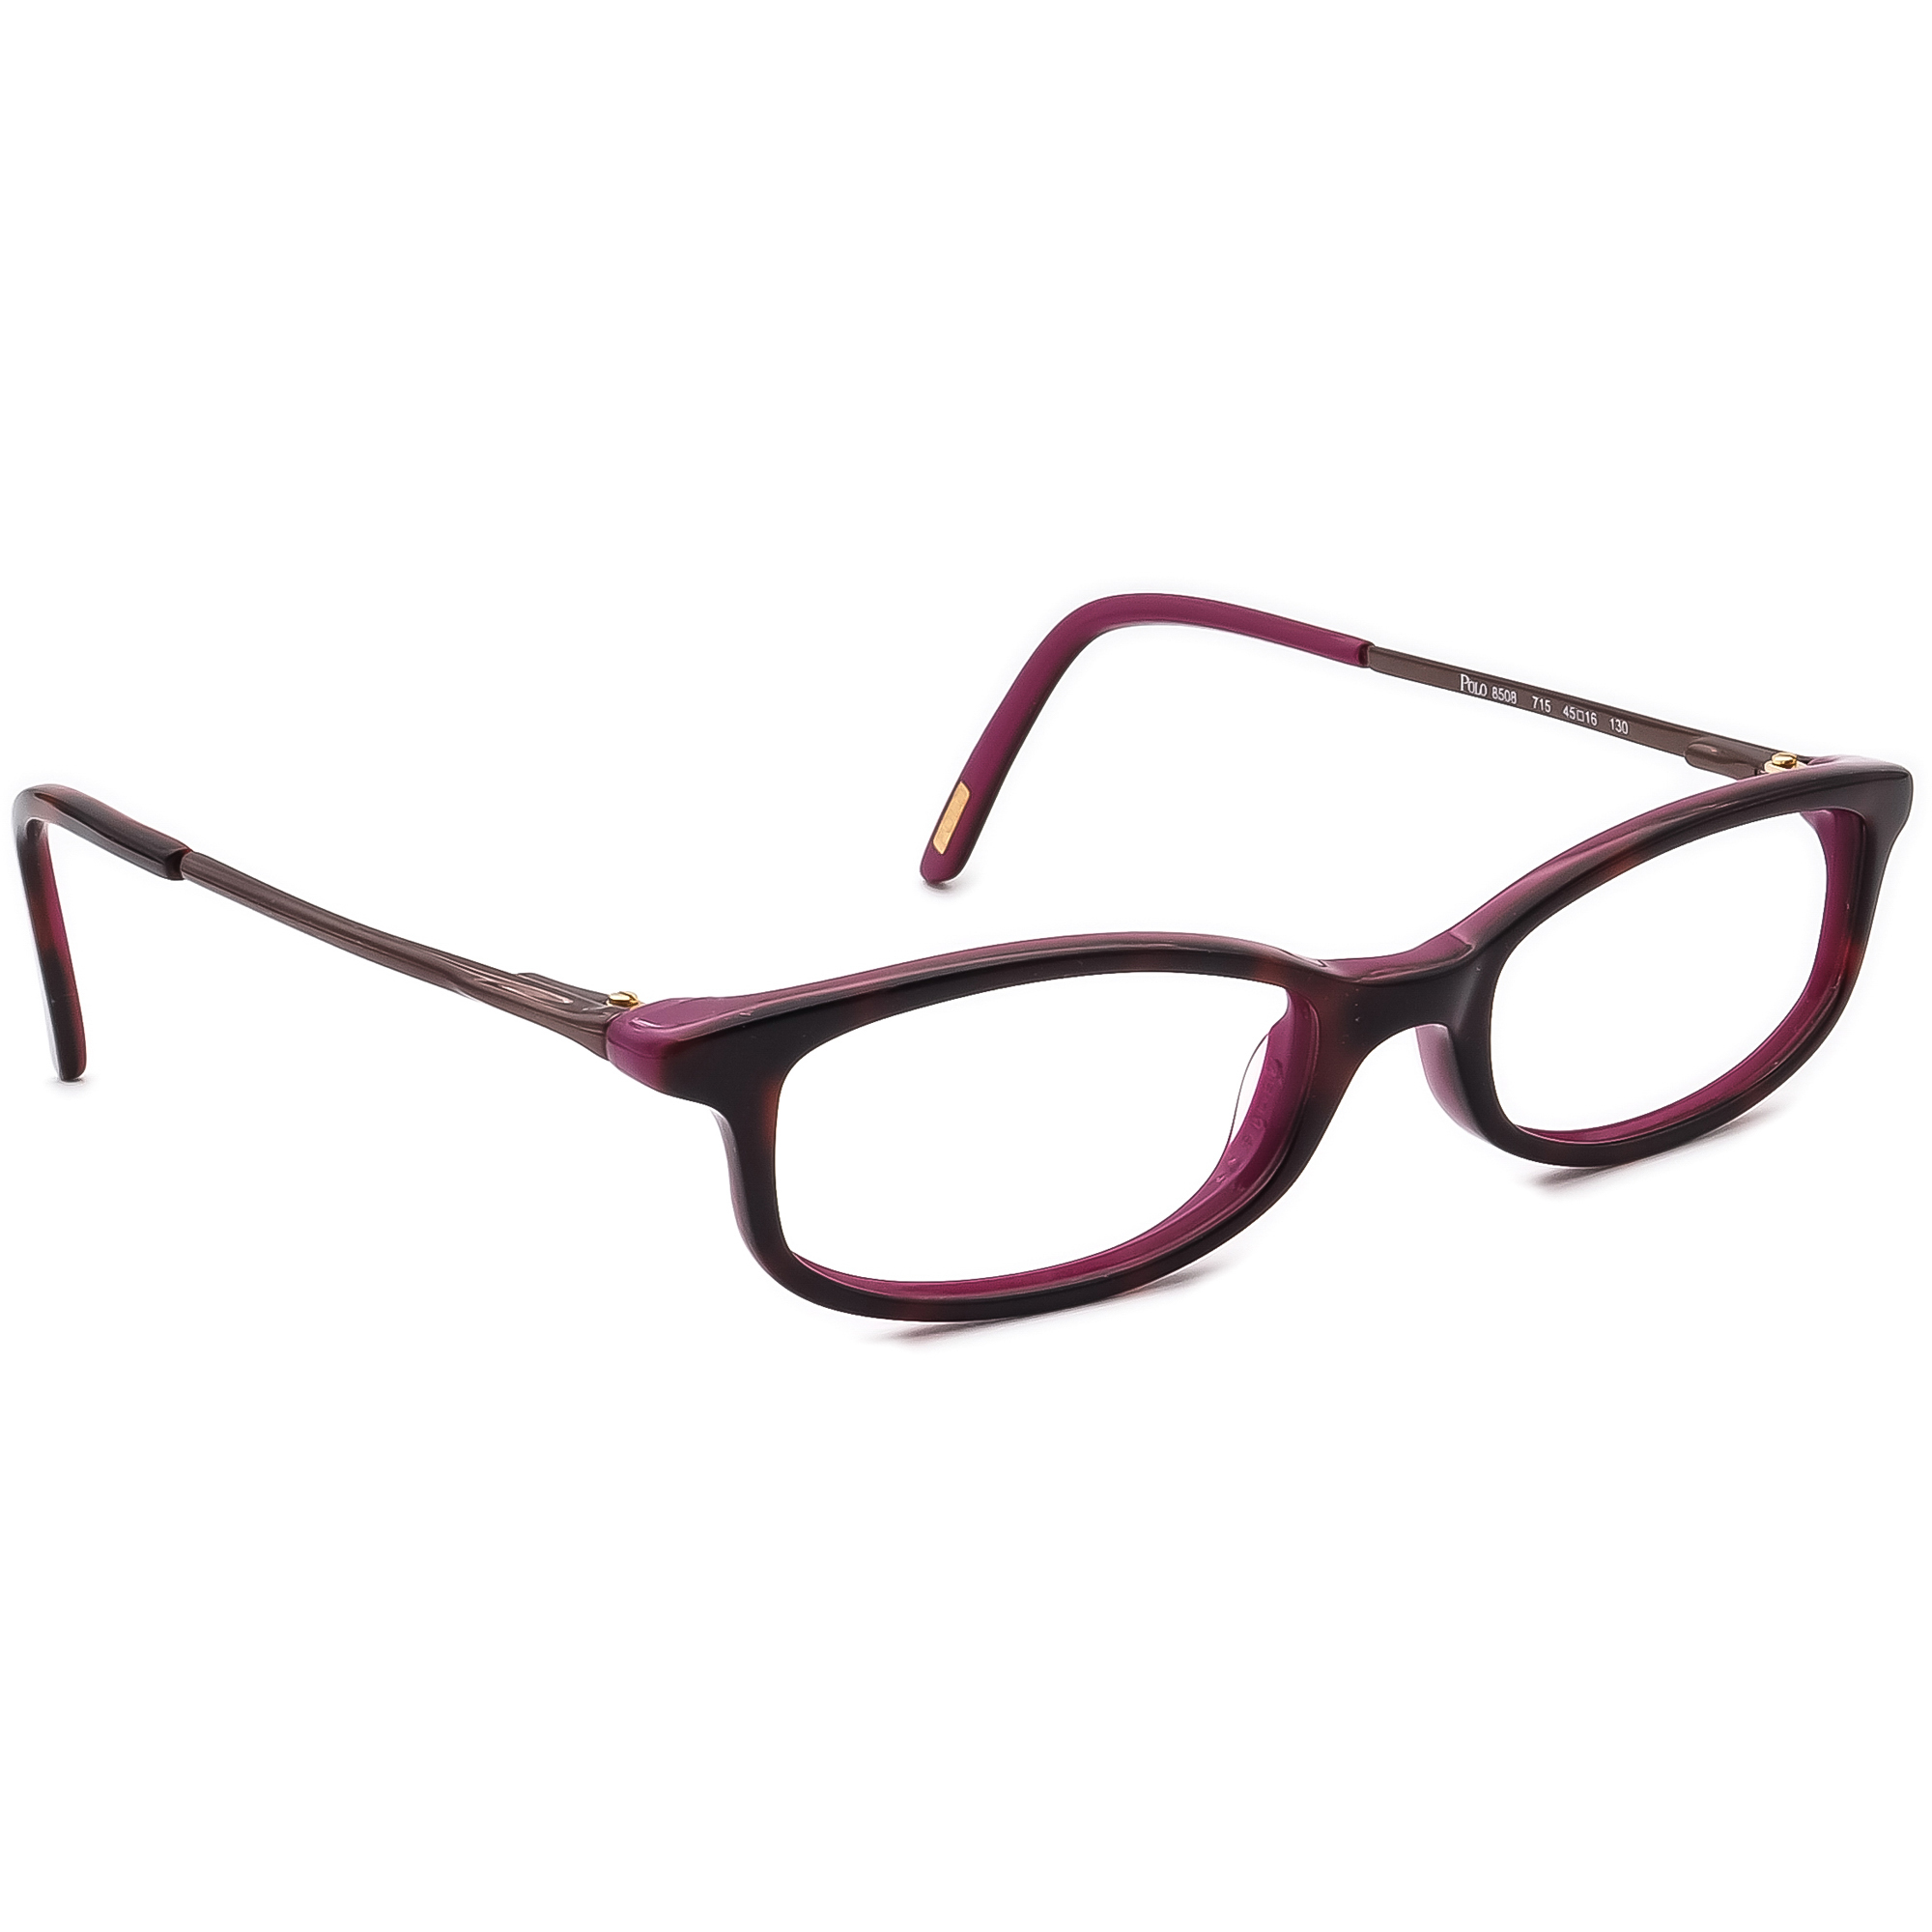 Ralph Lauren Polo PH 8508 715 Eyeglasses